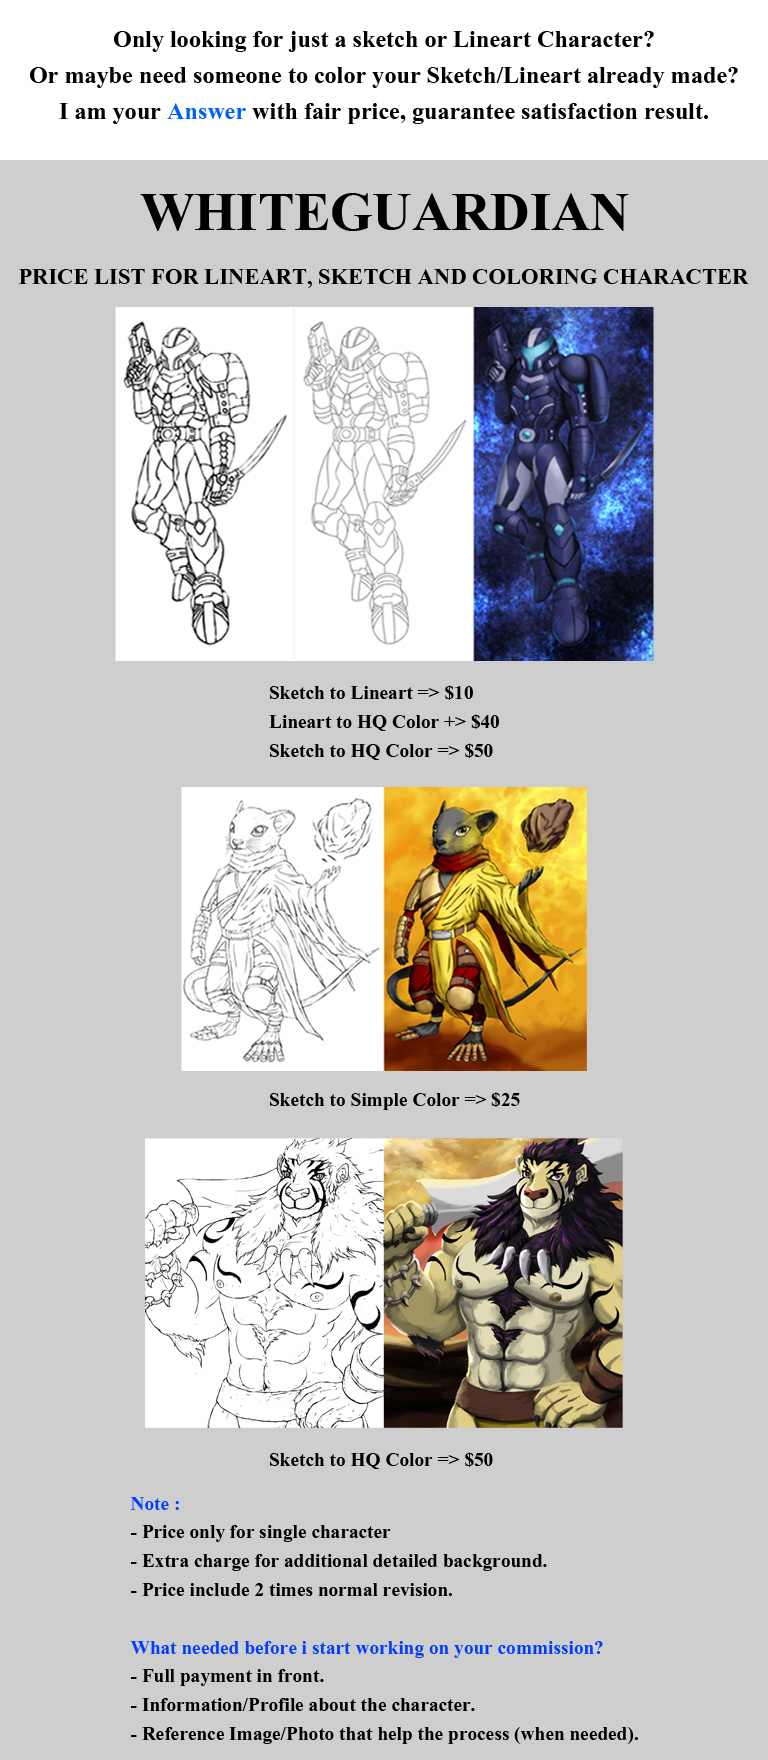 Price List for Lineart, Sketch and Coloring